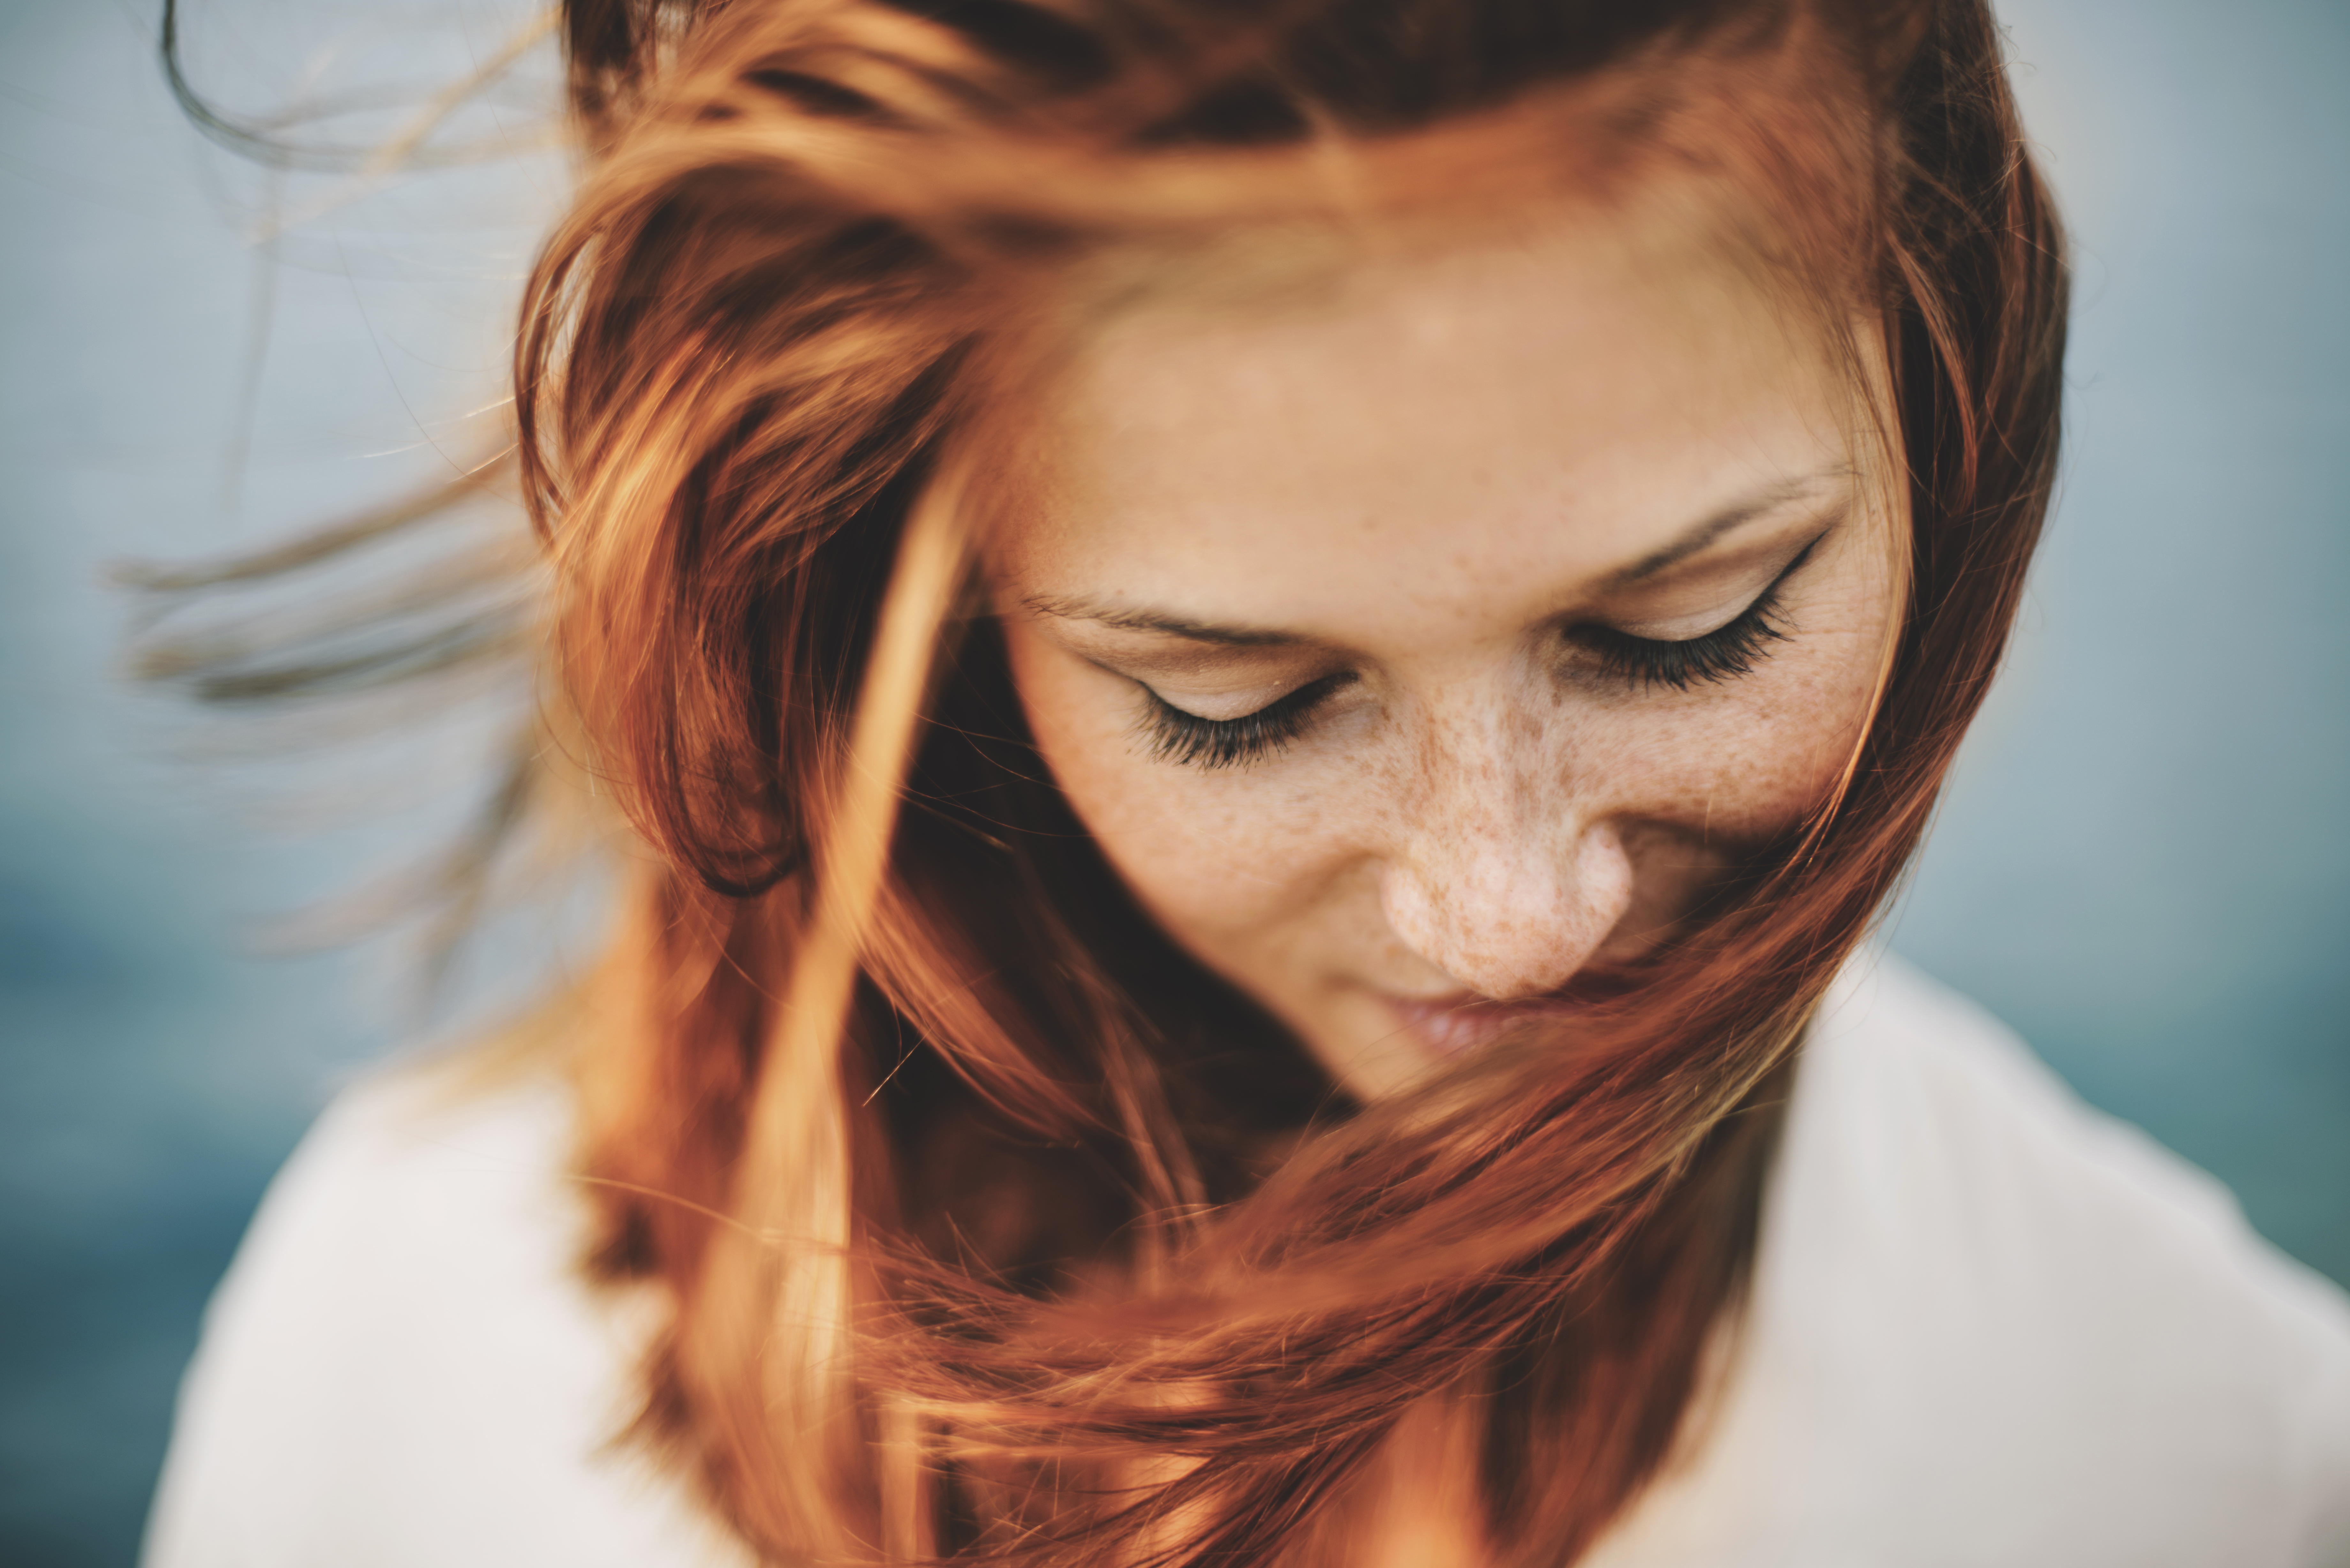 The bride wanted her cousin to dye her natural hair colour. [Photo: Getty]